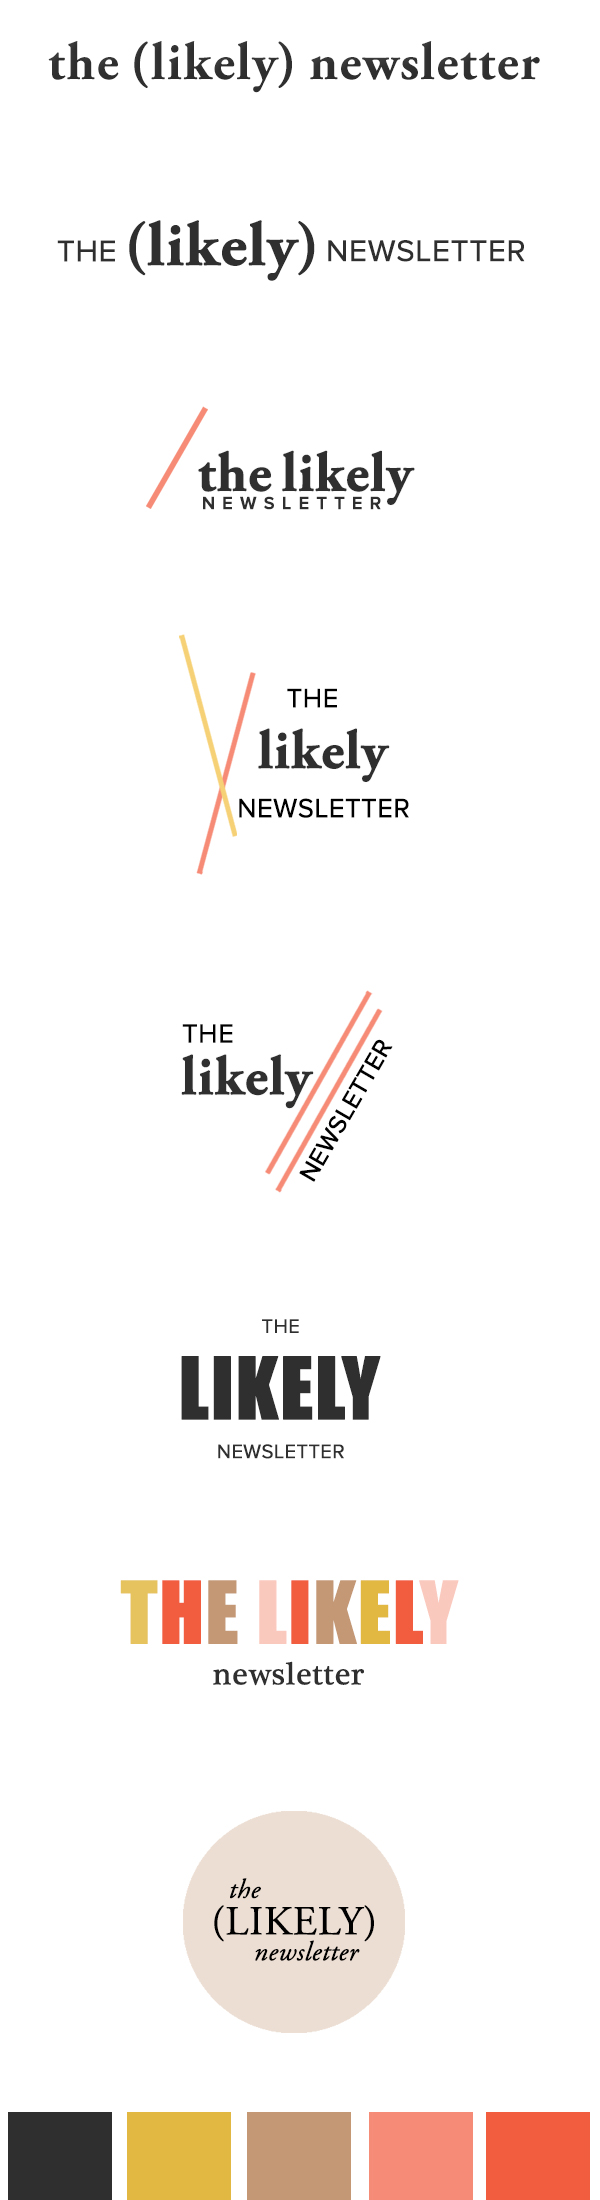 thelikely_logo